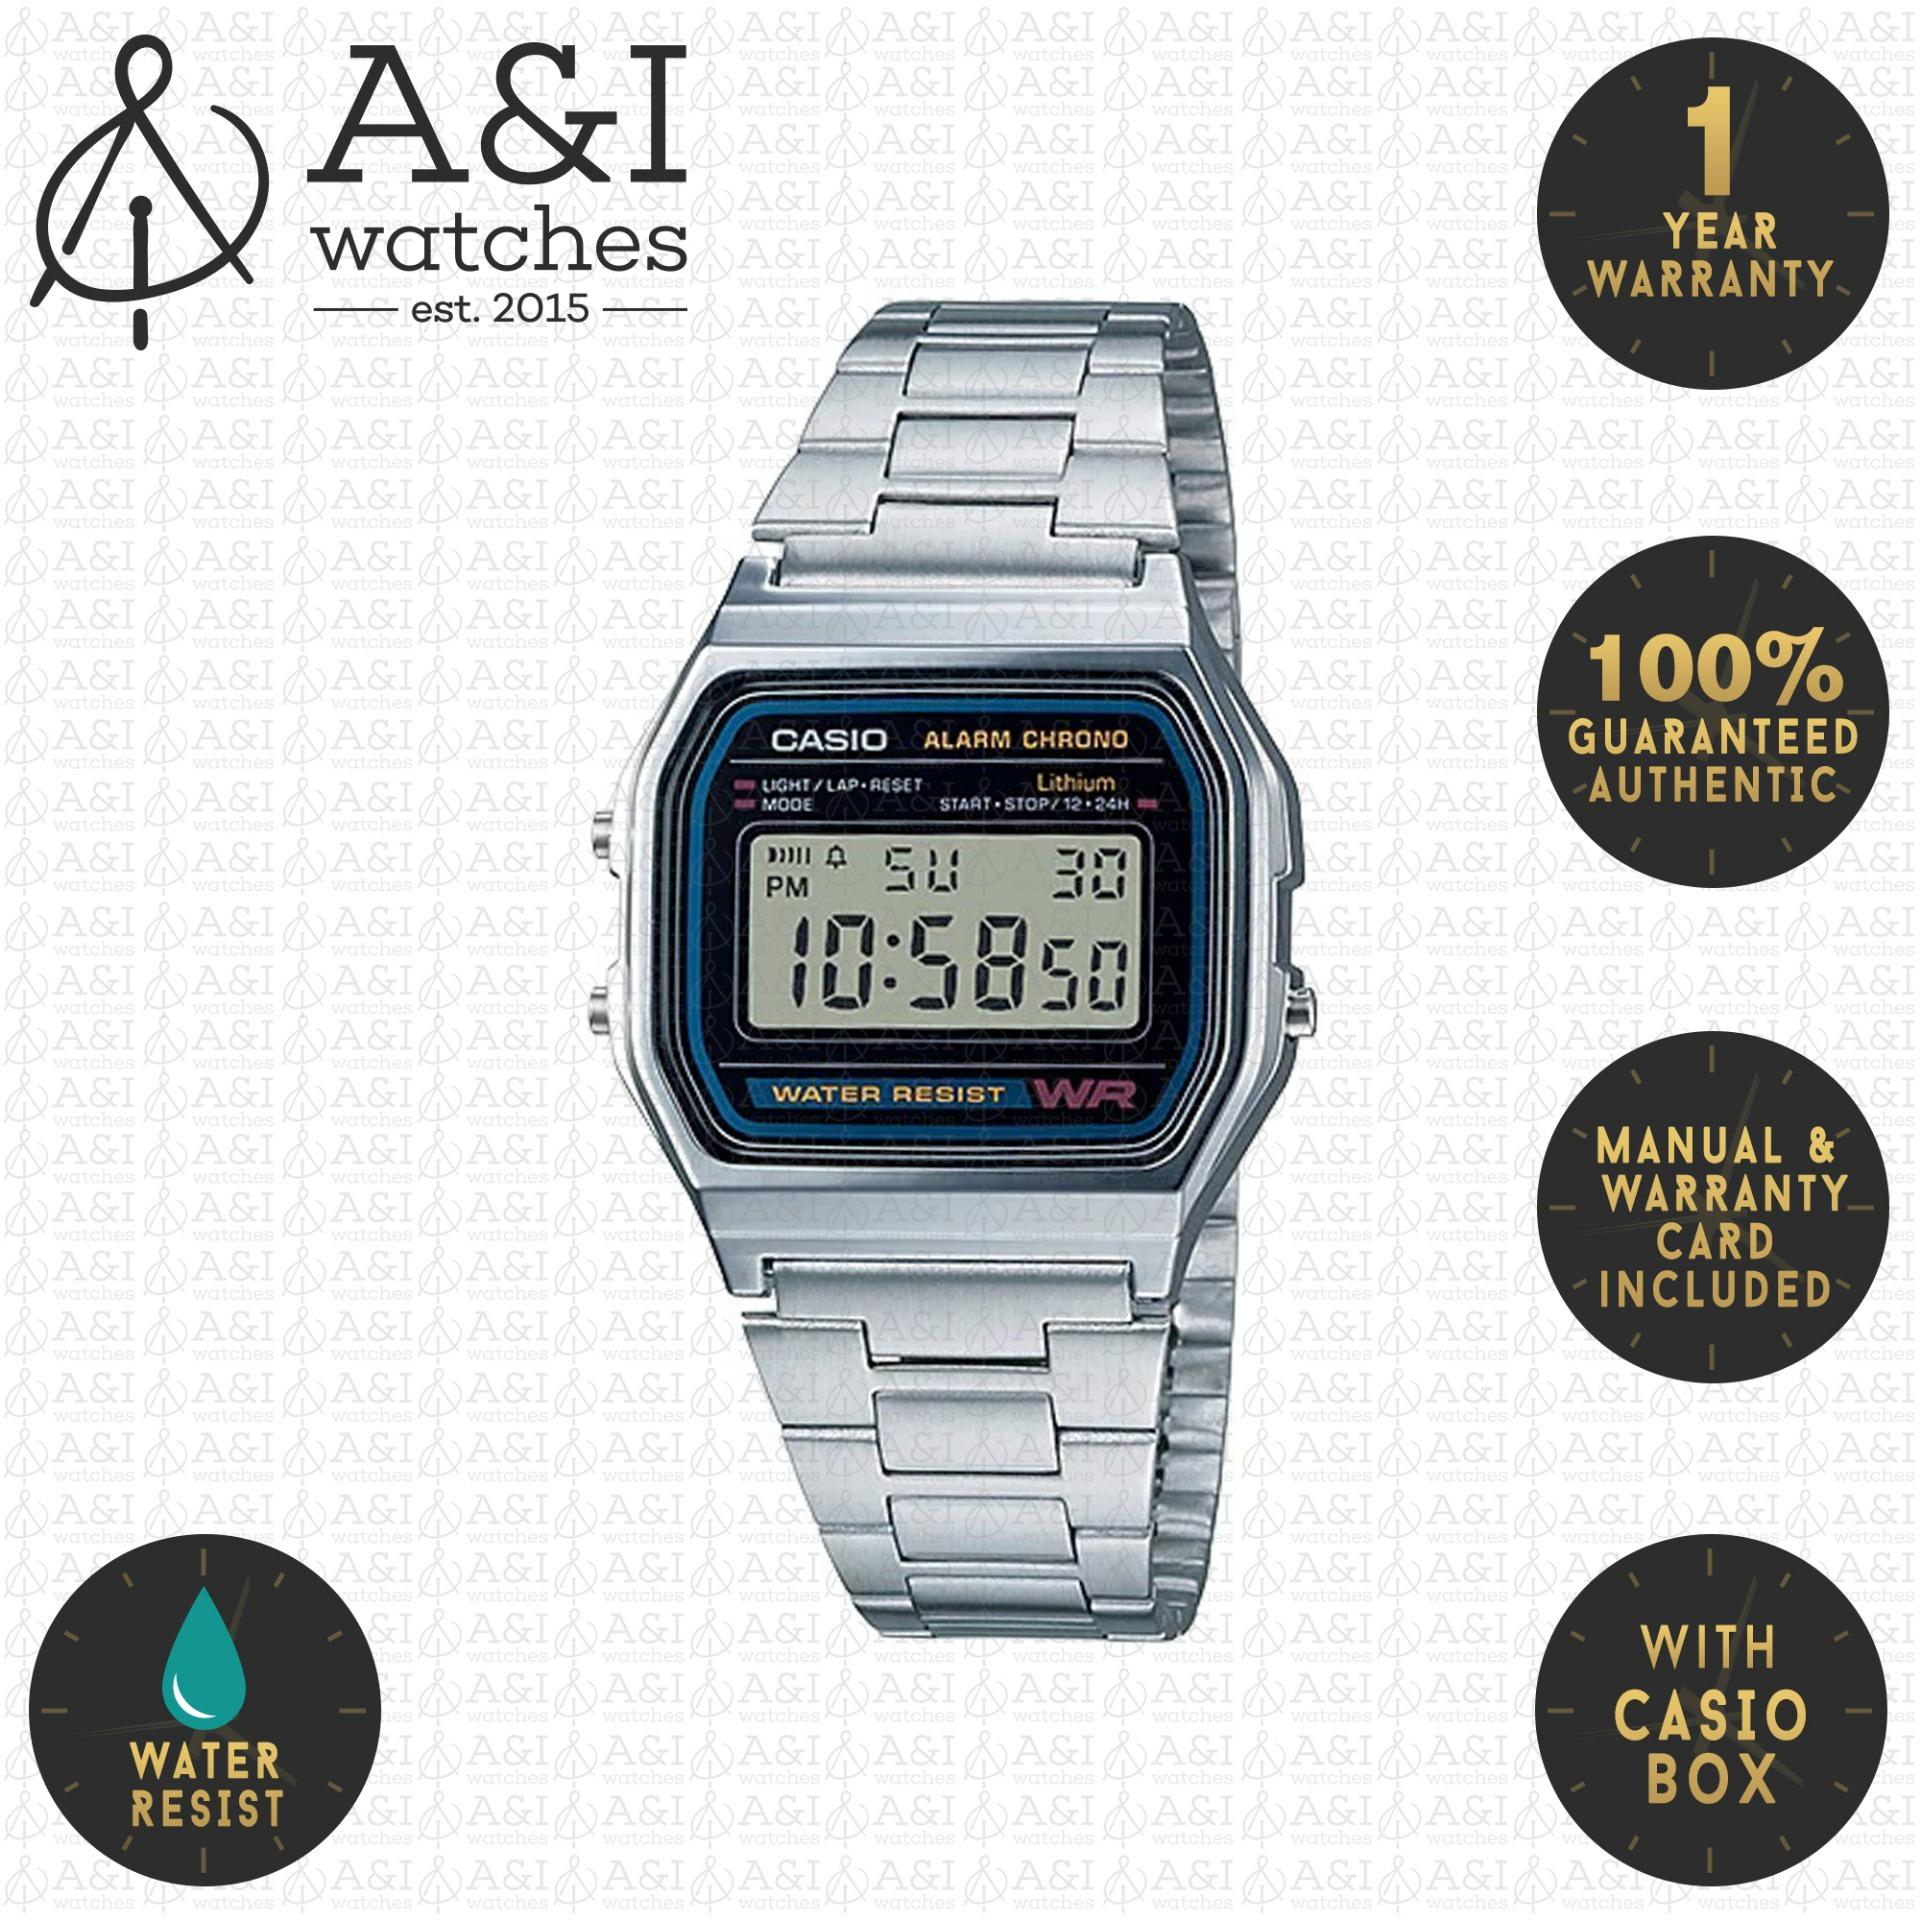 856b200b0ae Casio Philippines - Casio Watches for sale - prices   reviews